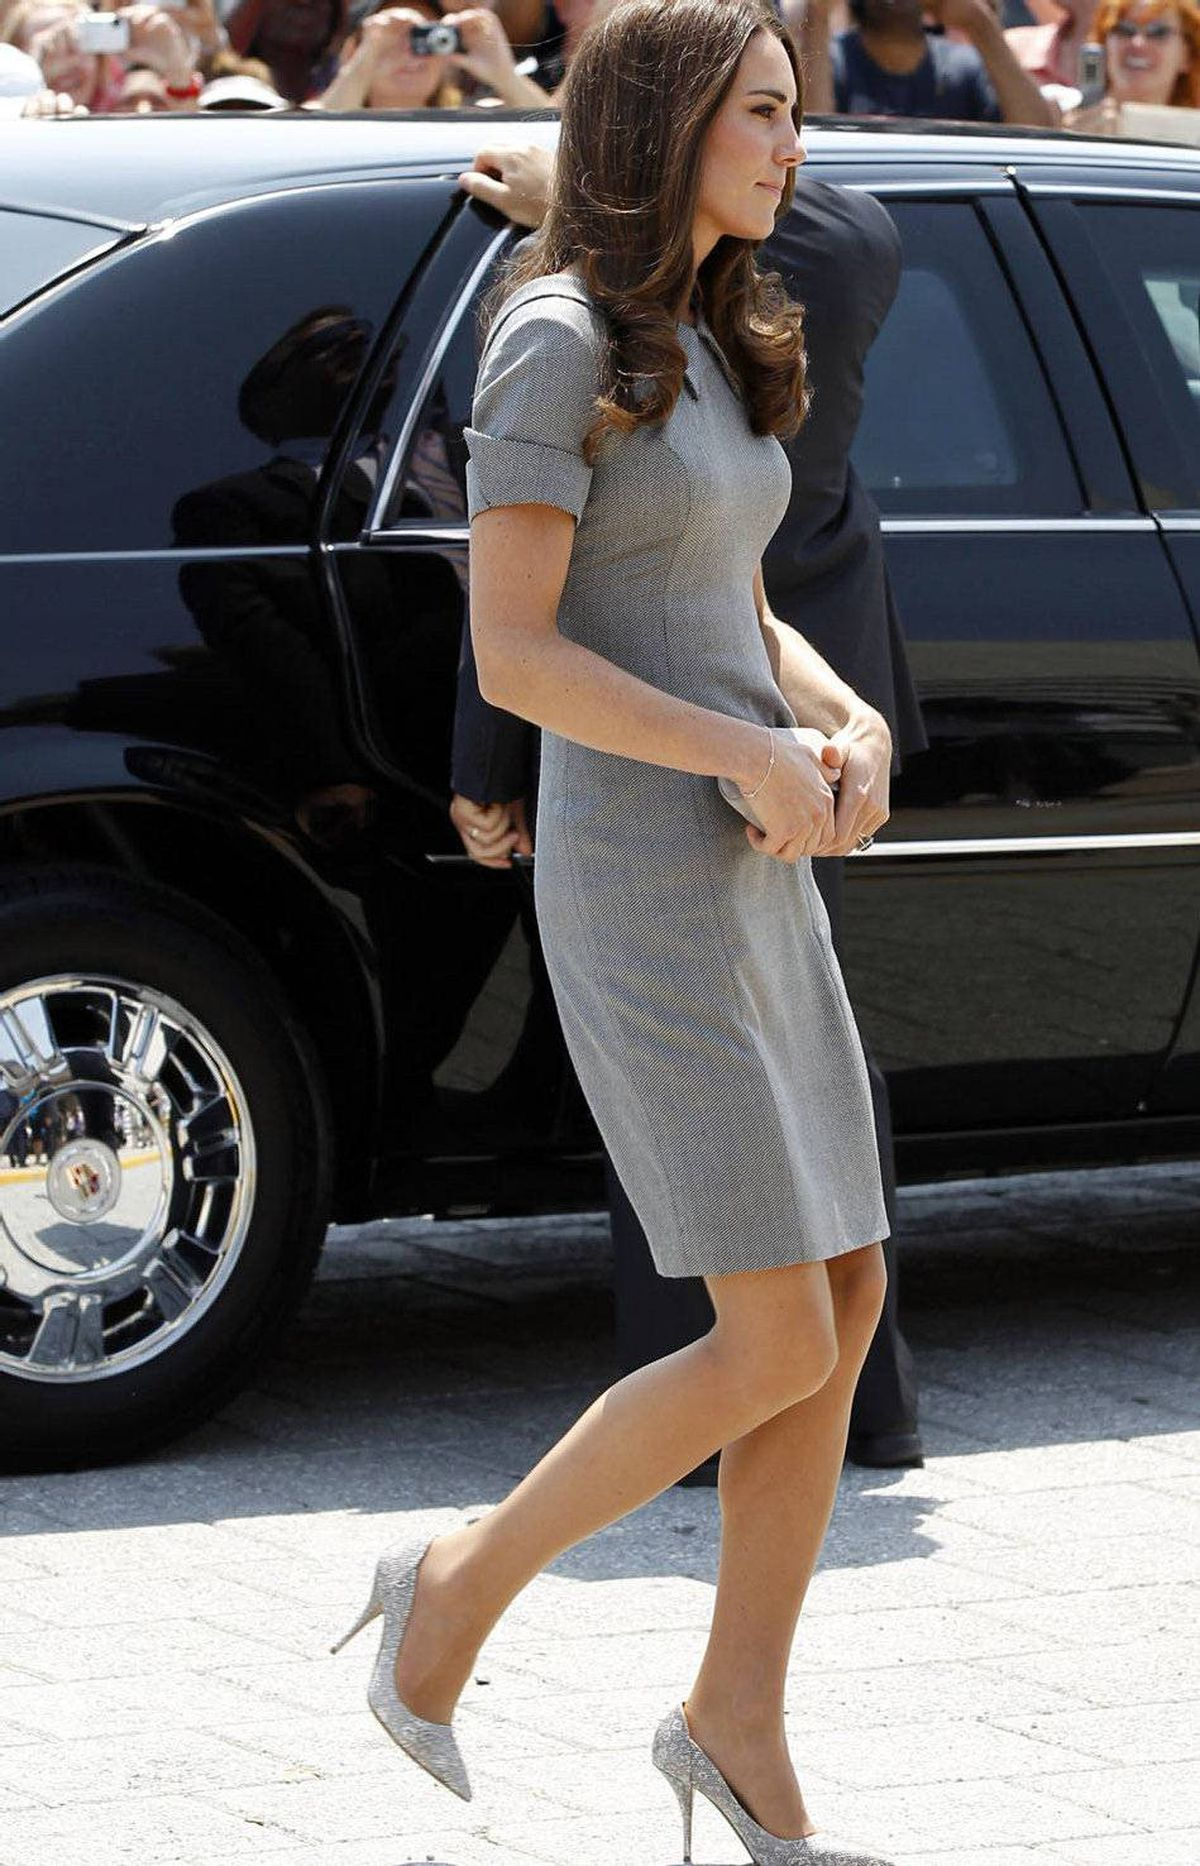 Catherine, Duchess of Cambridge, arrives at reception at the Canadian War Museum in Ottawa July 2, 2011.